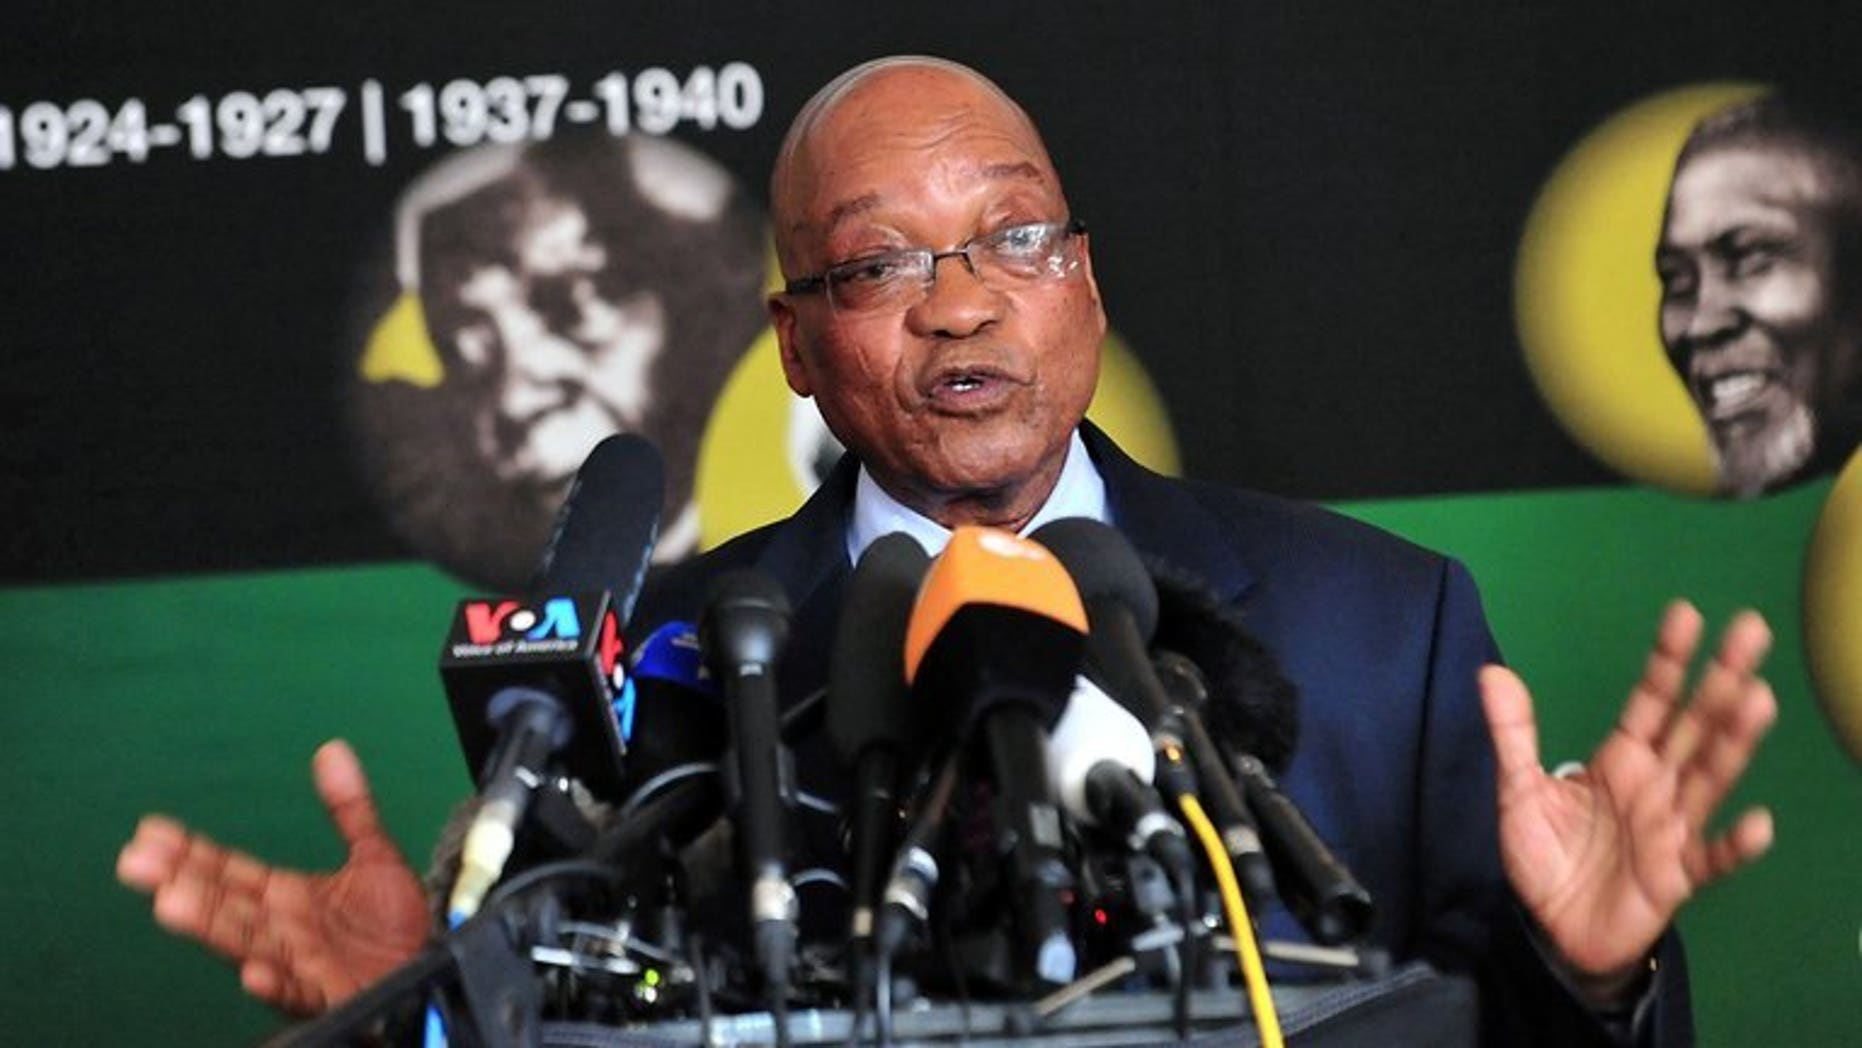 South African president Jacob Zuma speaks pictured in Johannesburg on June 24, 2013. An embattled Zuma reshuffled his cabinet with less than a year to go before elections Tuesday, axing key allies and ousting Tokyo Sexwale, a long-time big-hitter of the ruling ANC party.